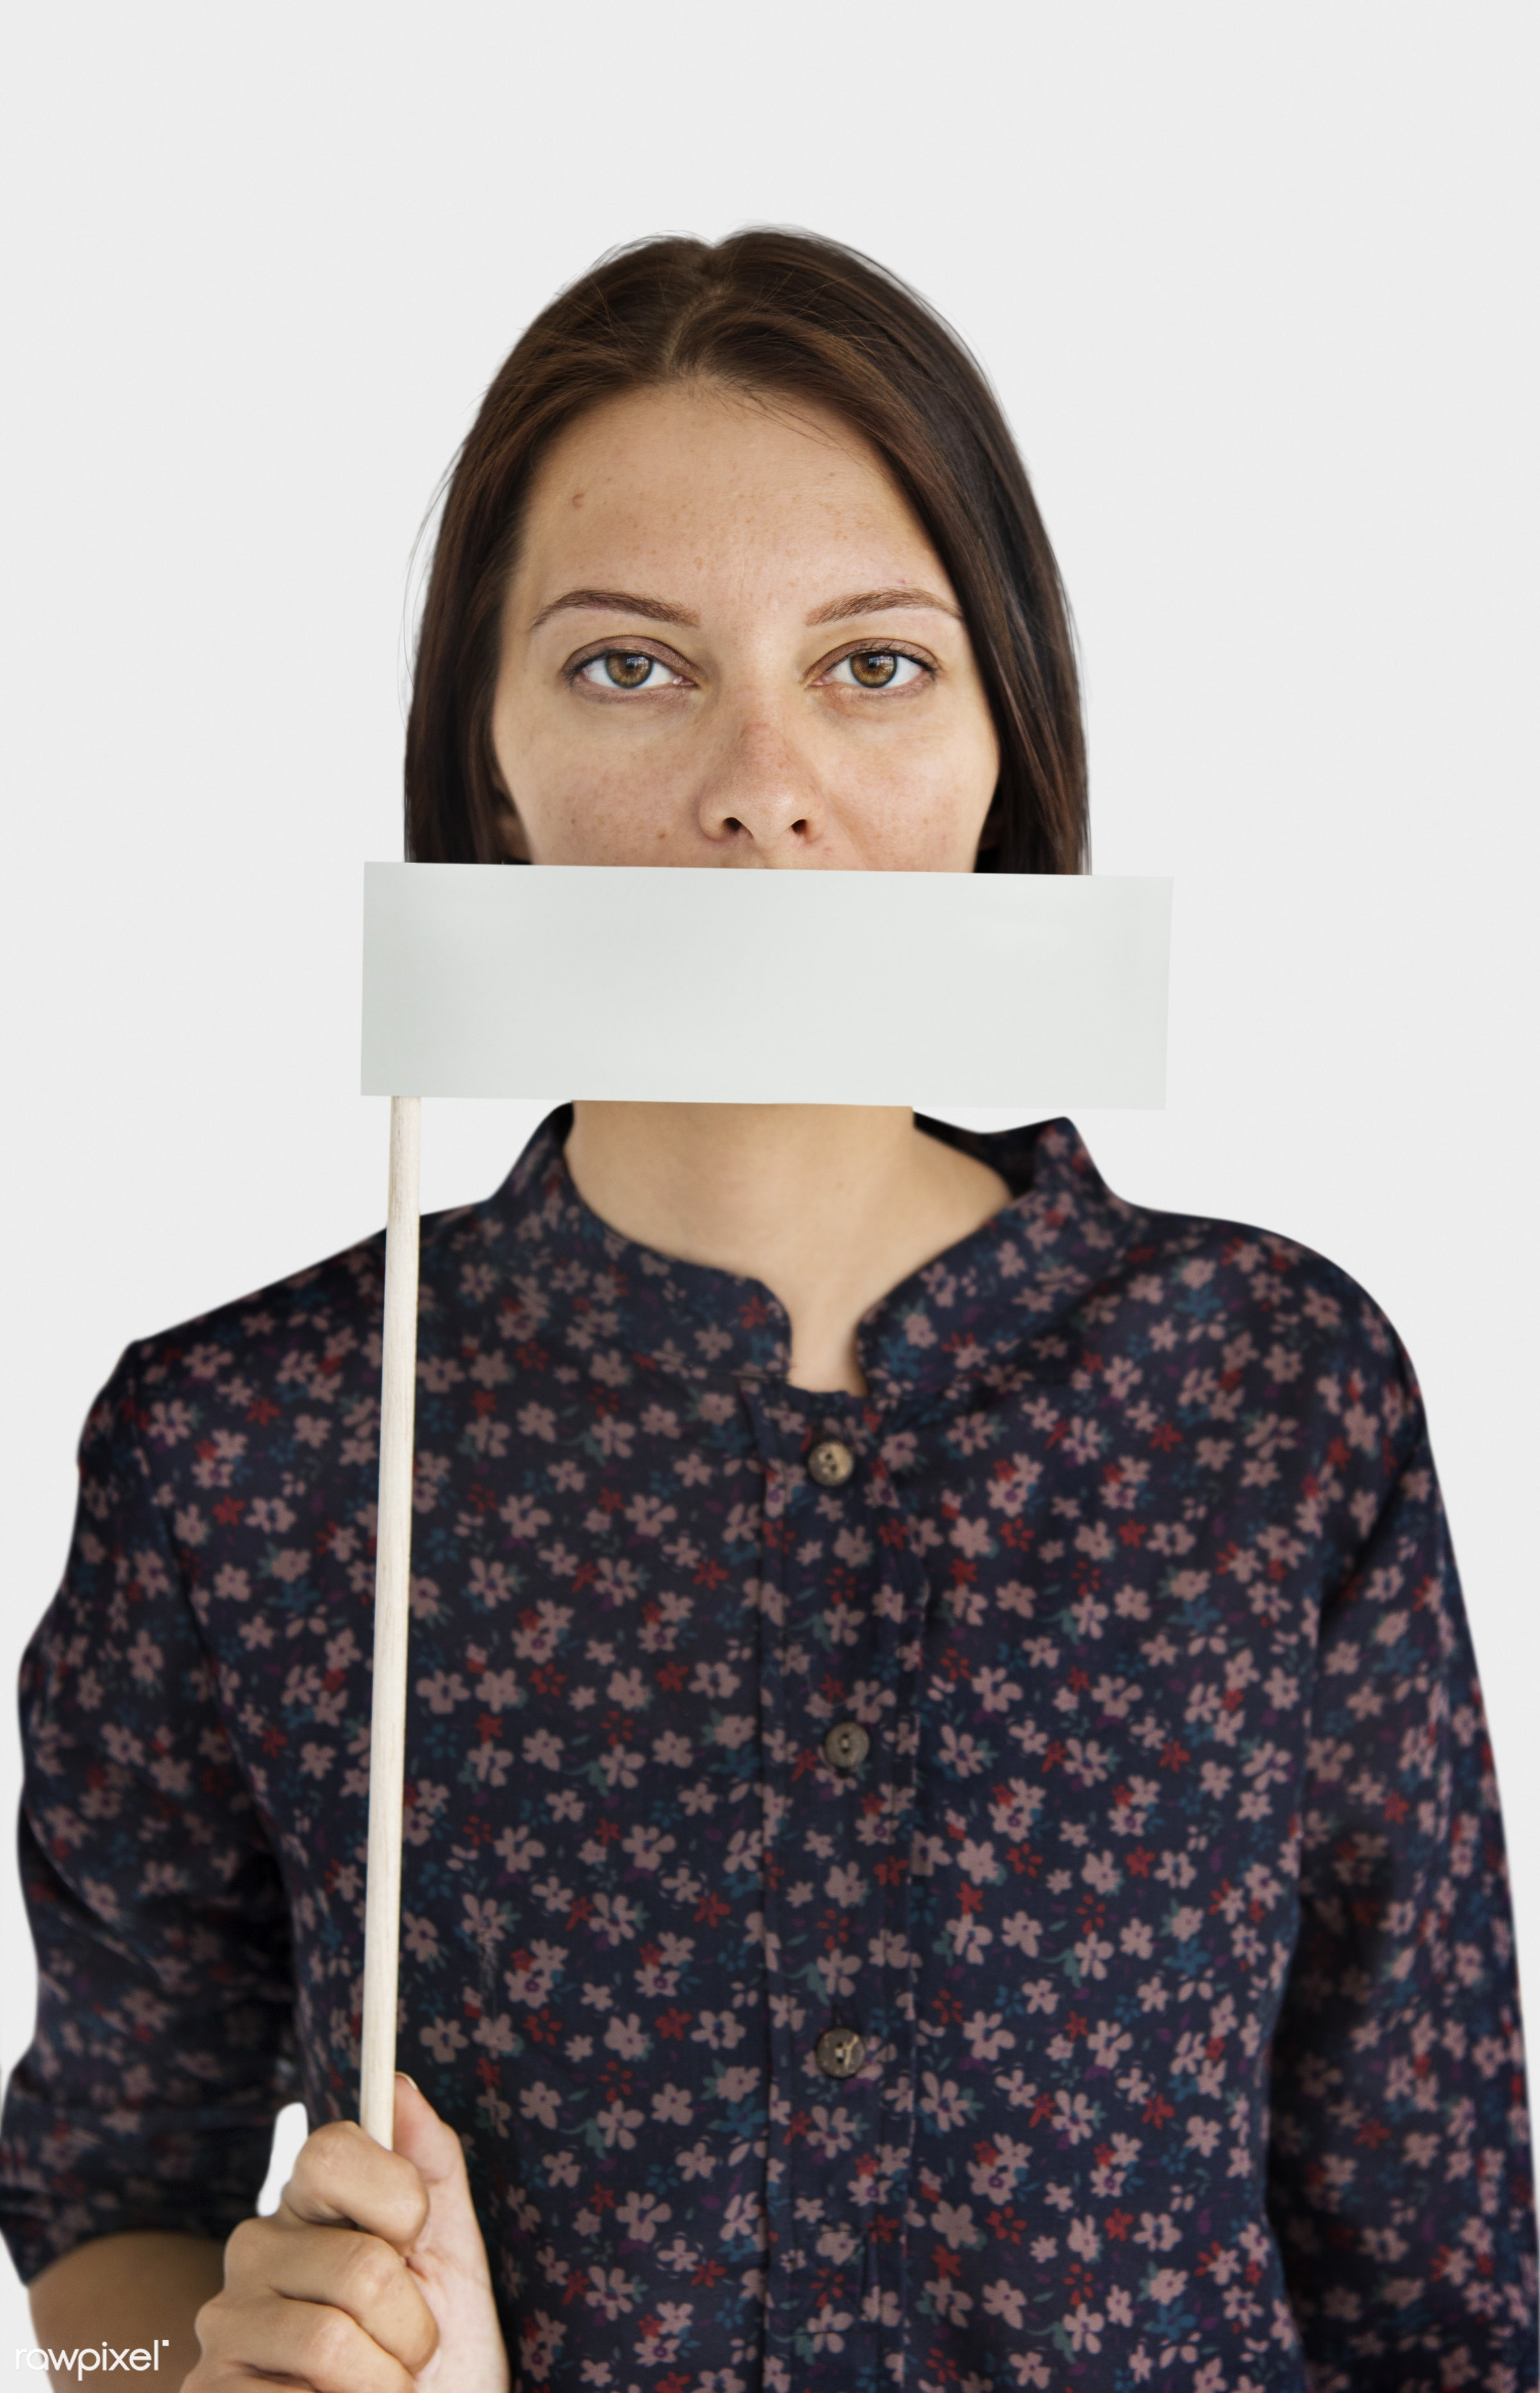 copy space, threat, covering, eligible, mouth covered, woman, alone, censor, forced, covered, isolated, problems, blank,...